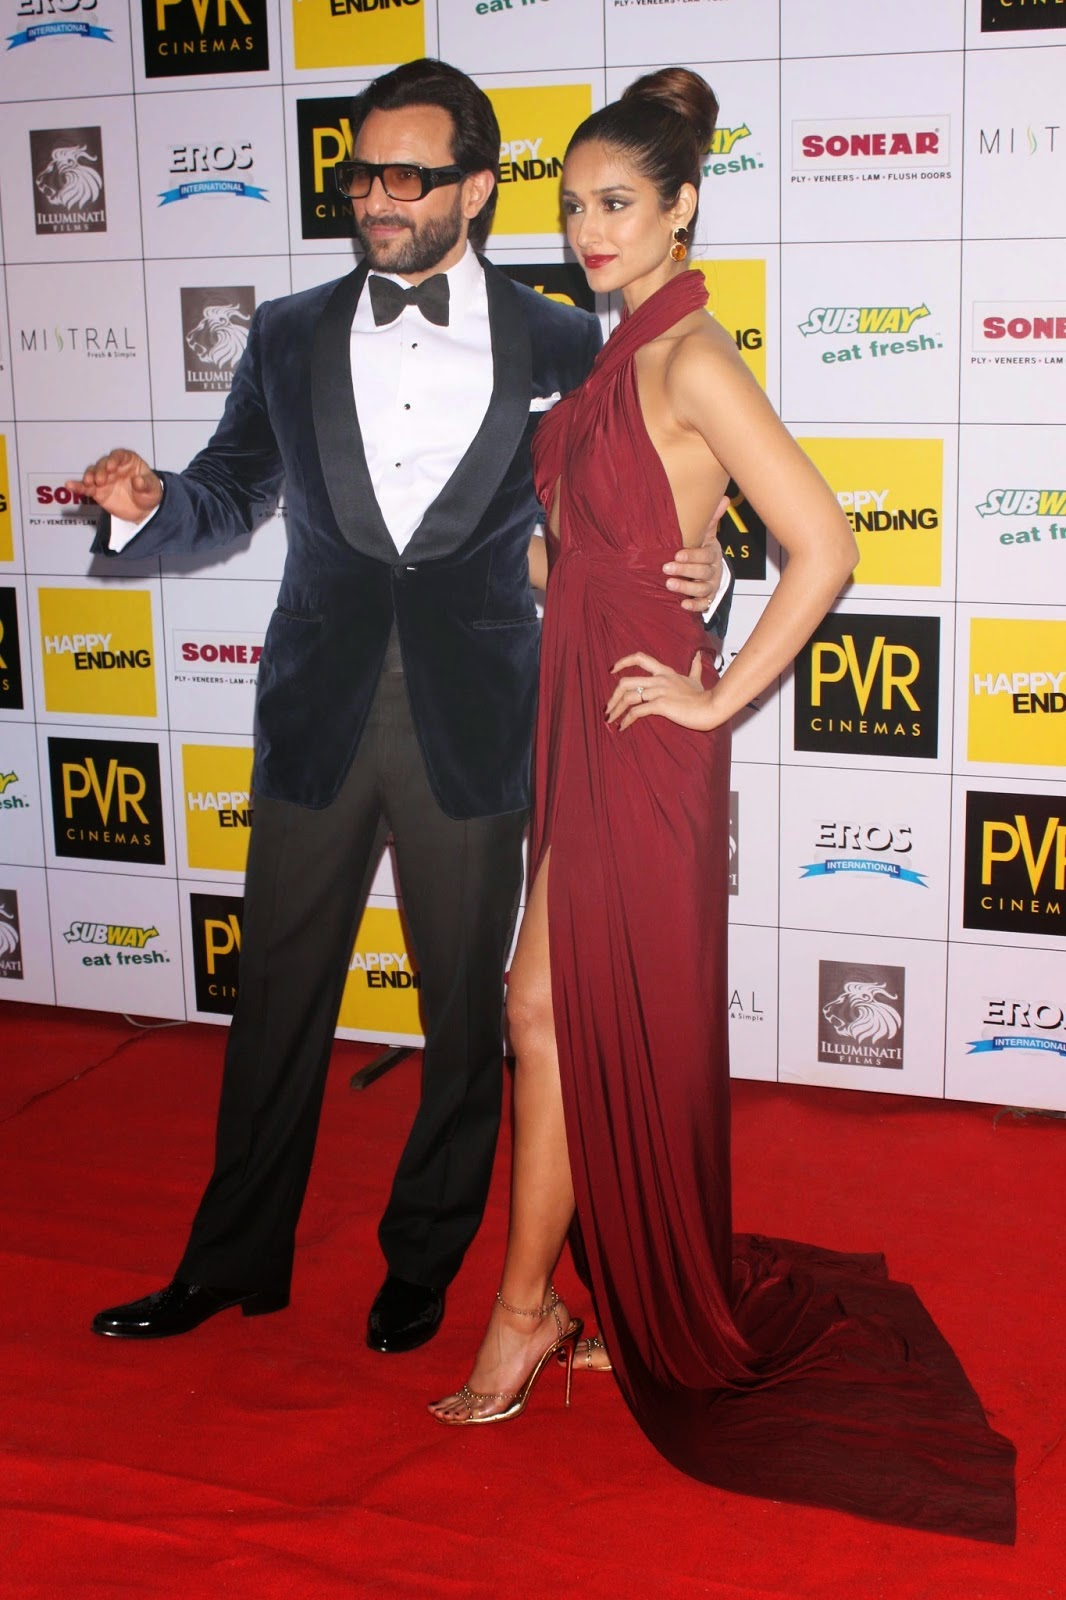 Ileana D'Cruz along with Saif Ali Khan at the Premiere of Film 'Happy Ending'